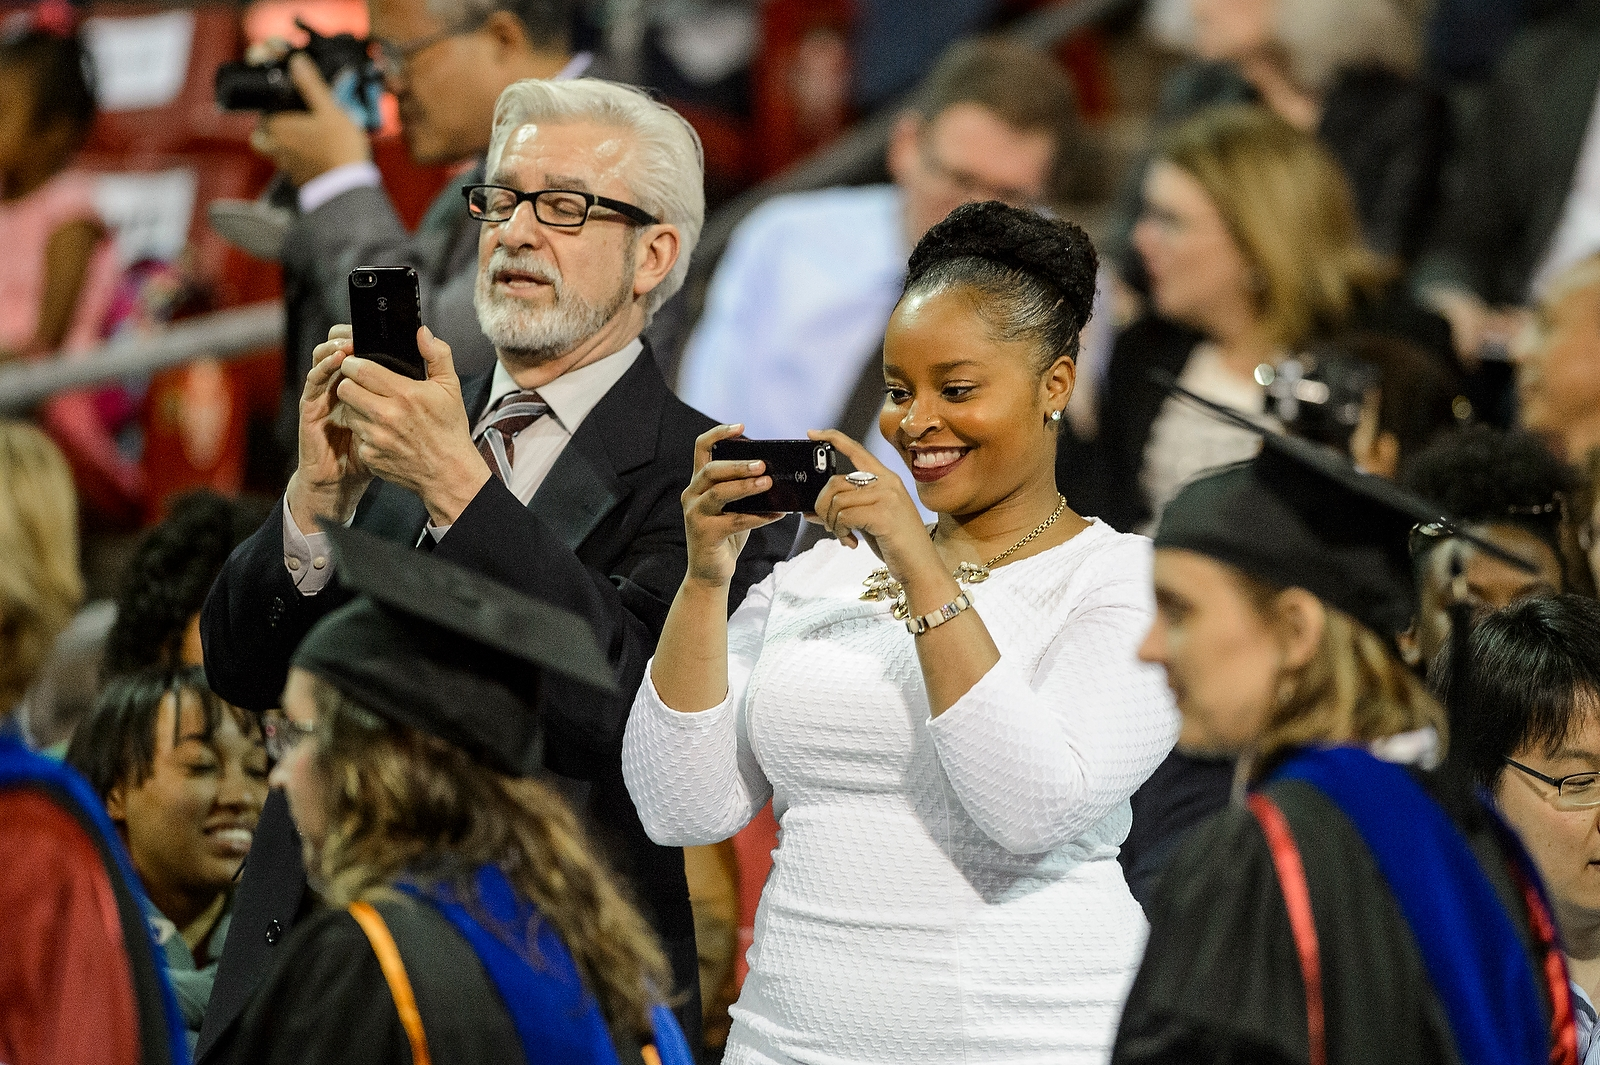 Proud family members capture the moment during commencement exercises for graduate and professional students Friday, May 13, at the Kohl Center.